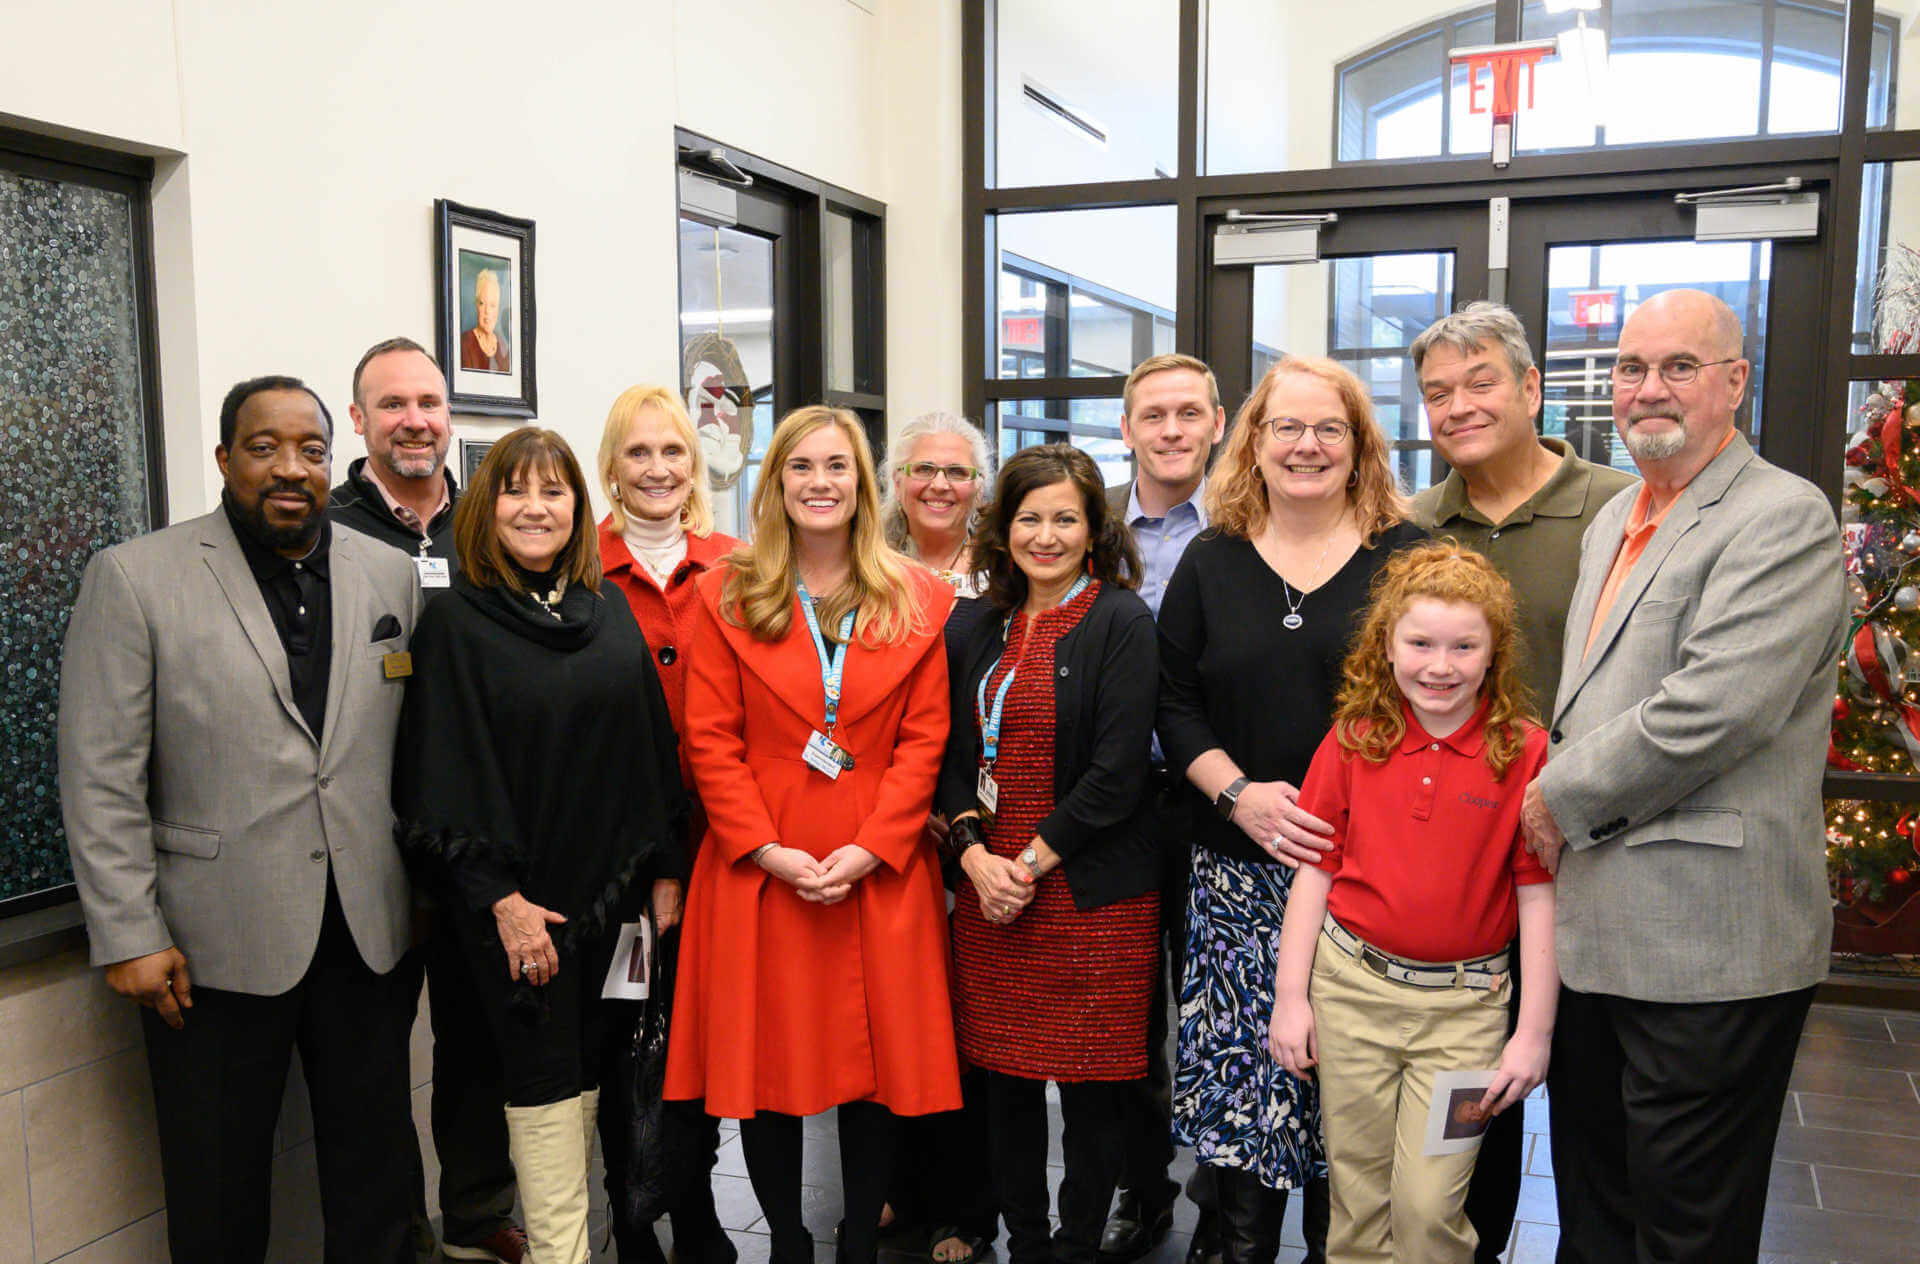 Longtime Epps Island Employee Honored with Administrative Wing Dedication